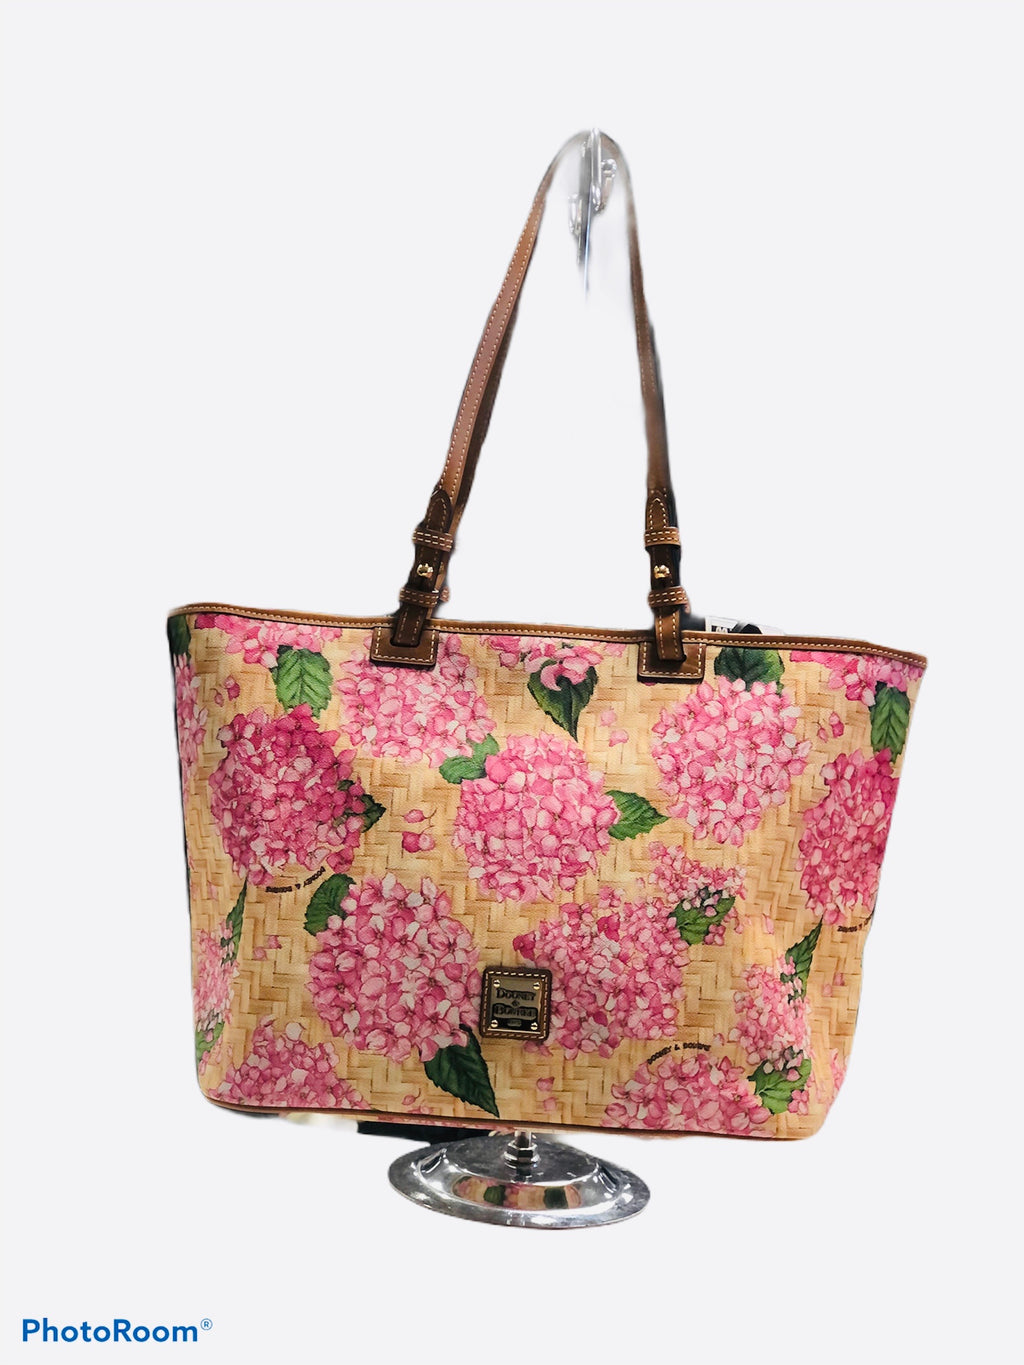 Handbag By Dooney And Bourke  Size: Large